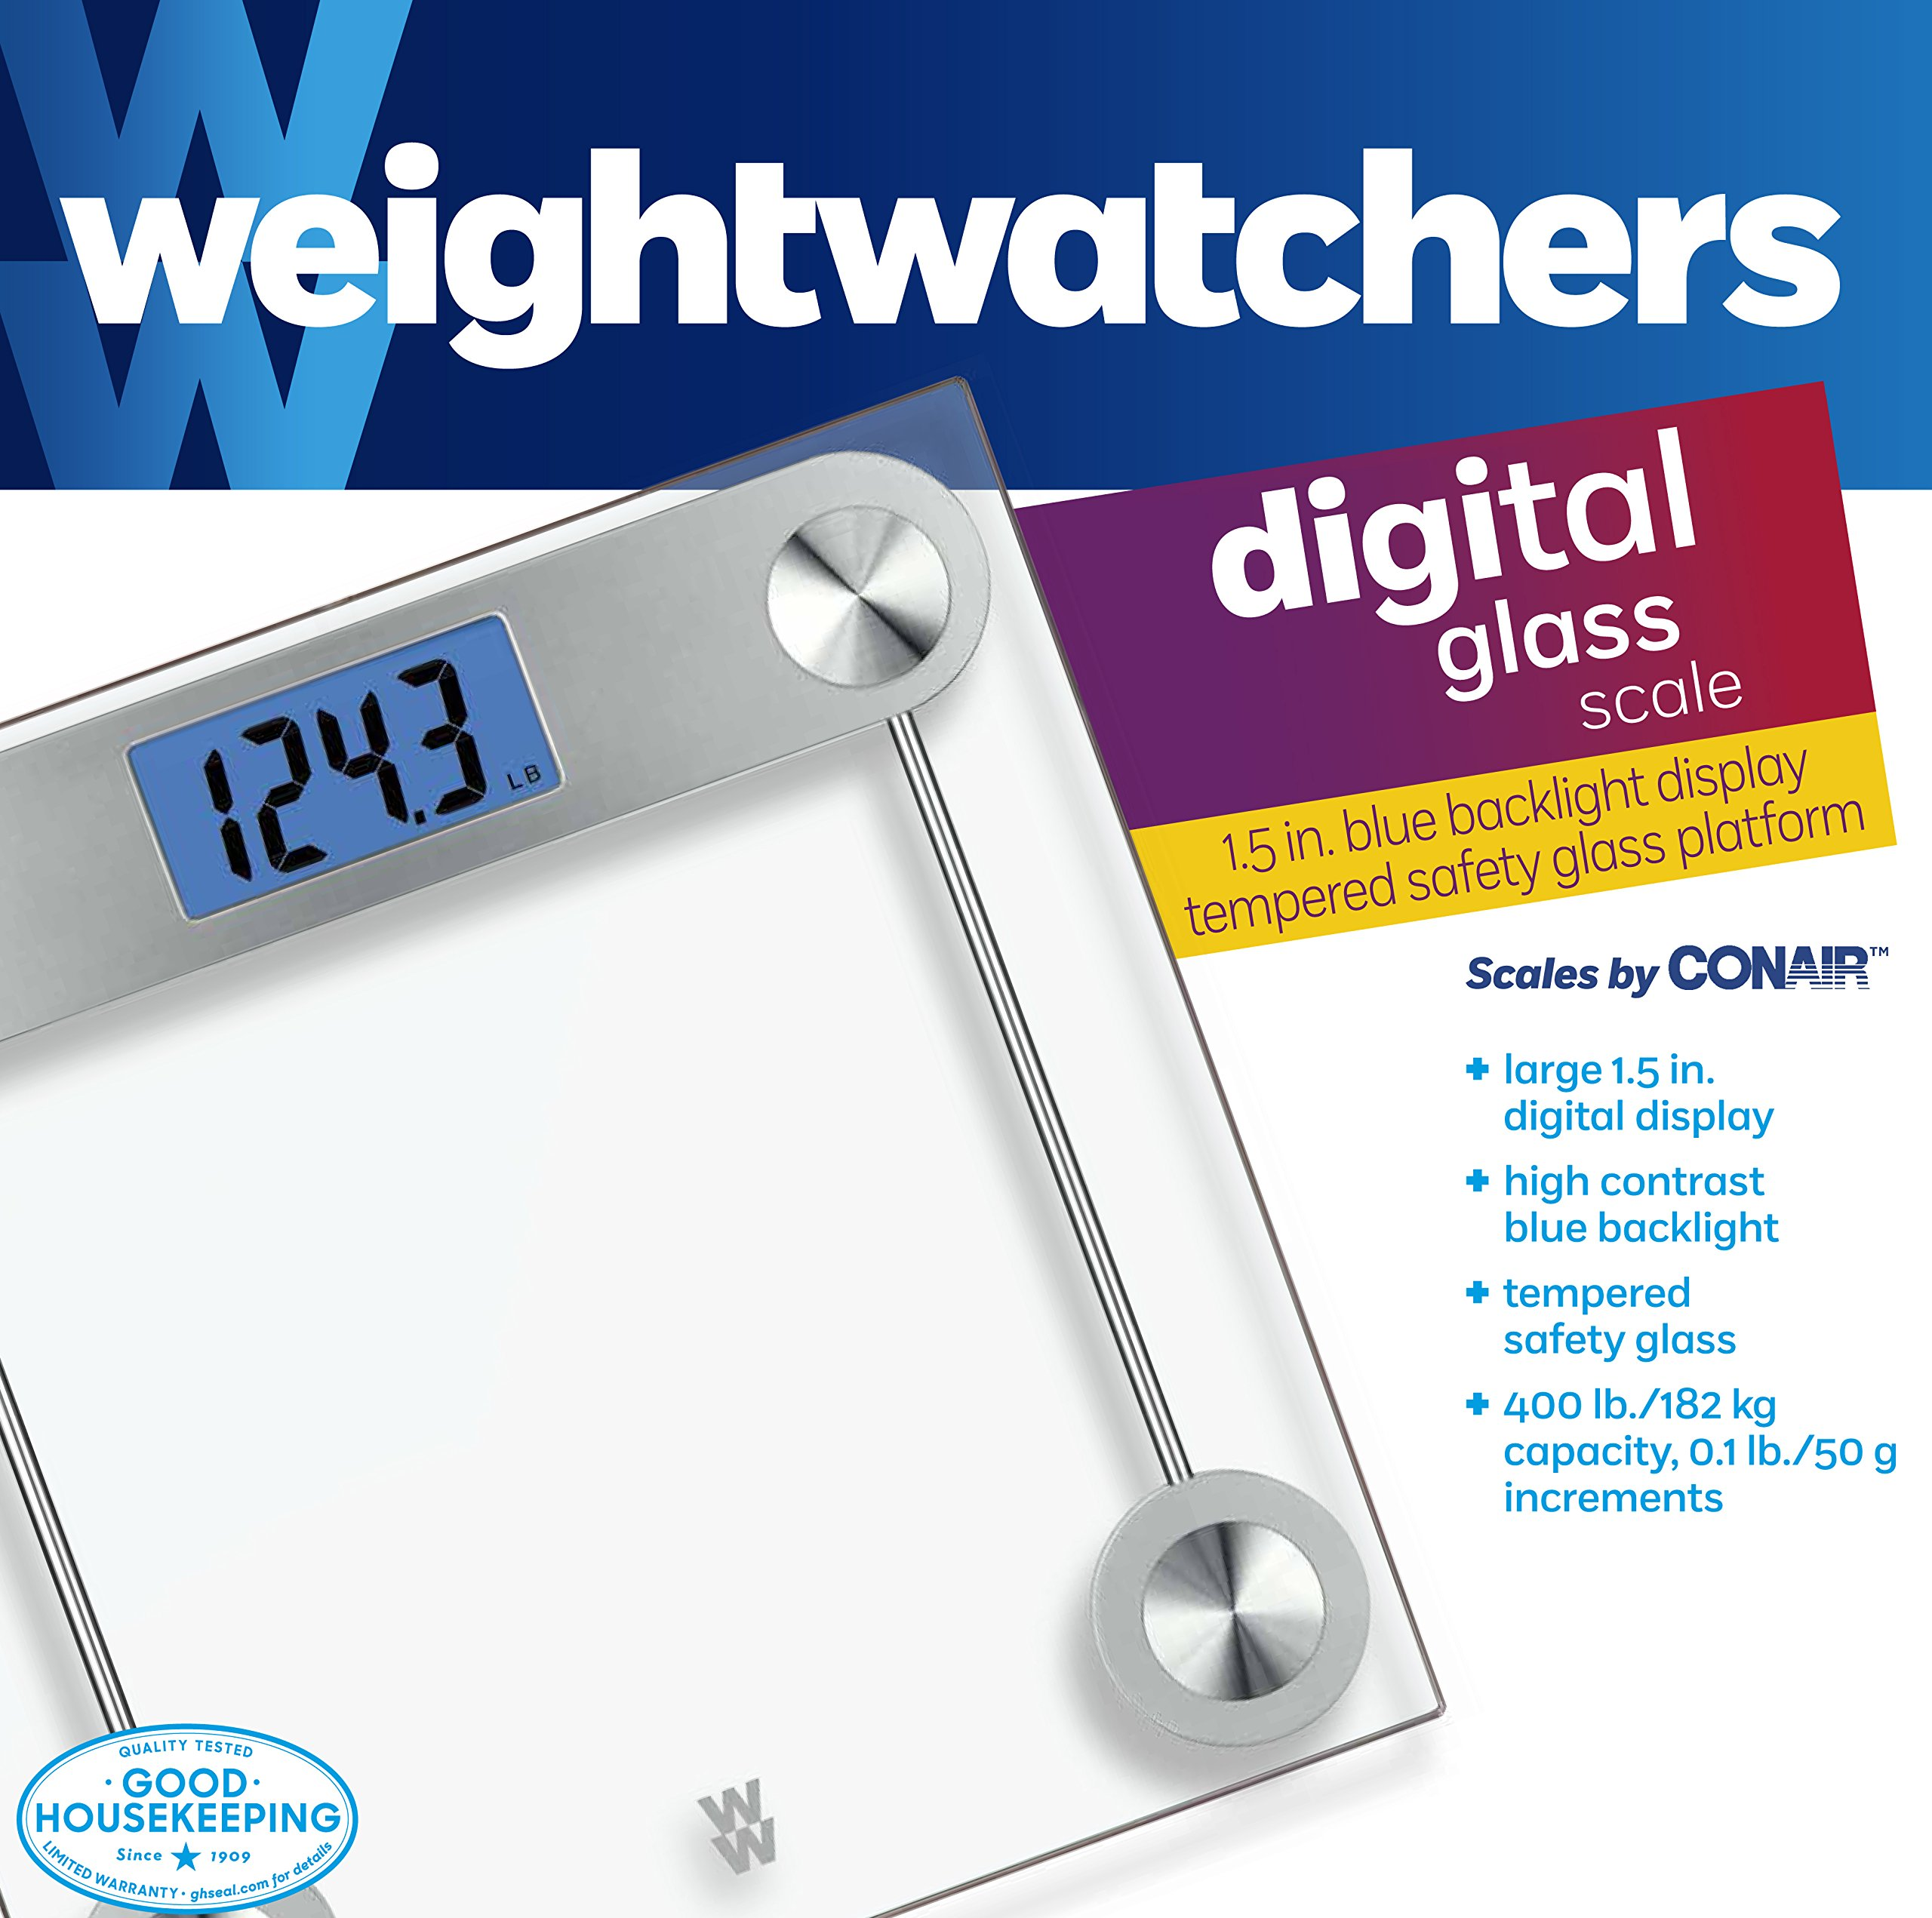 Weight Watchers by Conair Digital Glass Bathroom Scale; 400 lb. capacity; Elegant Gold Finish Bath Scale by Conair (Image #4)